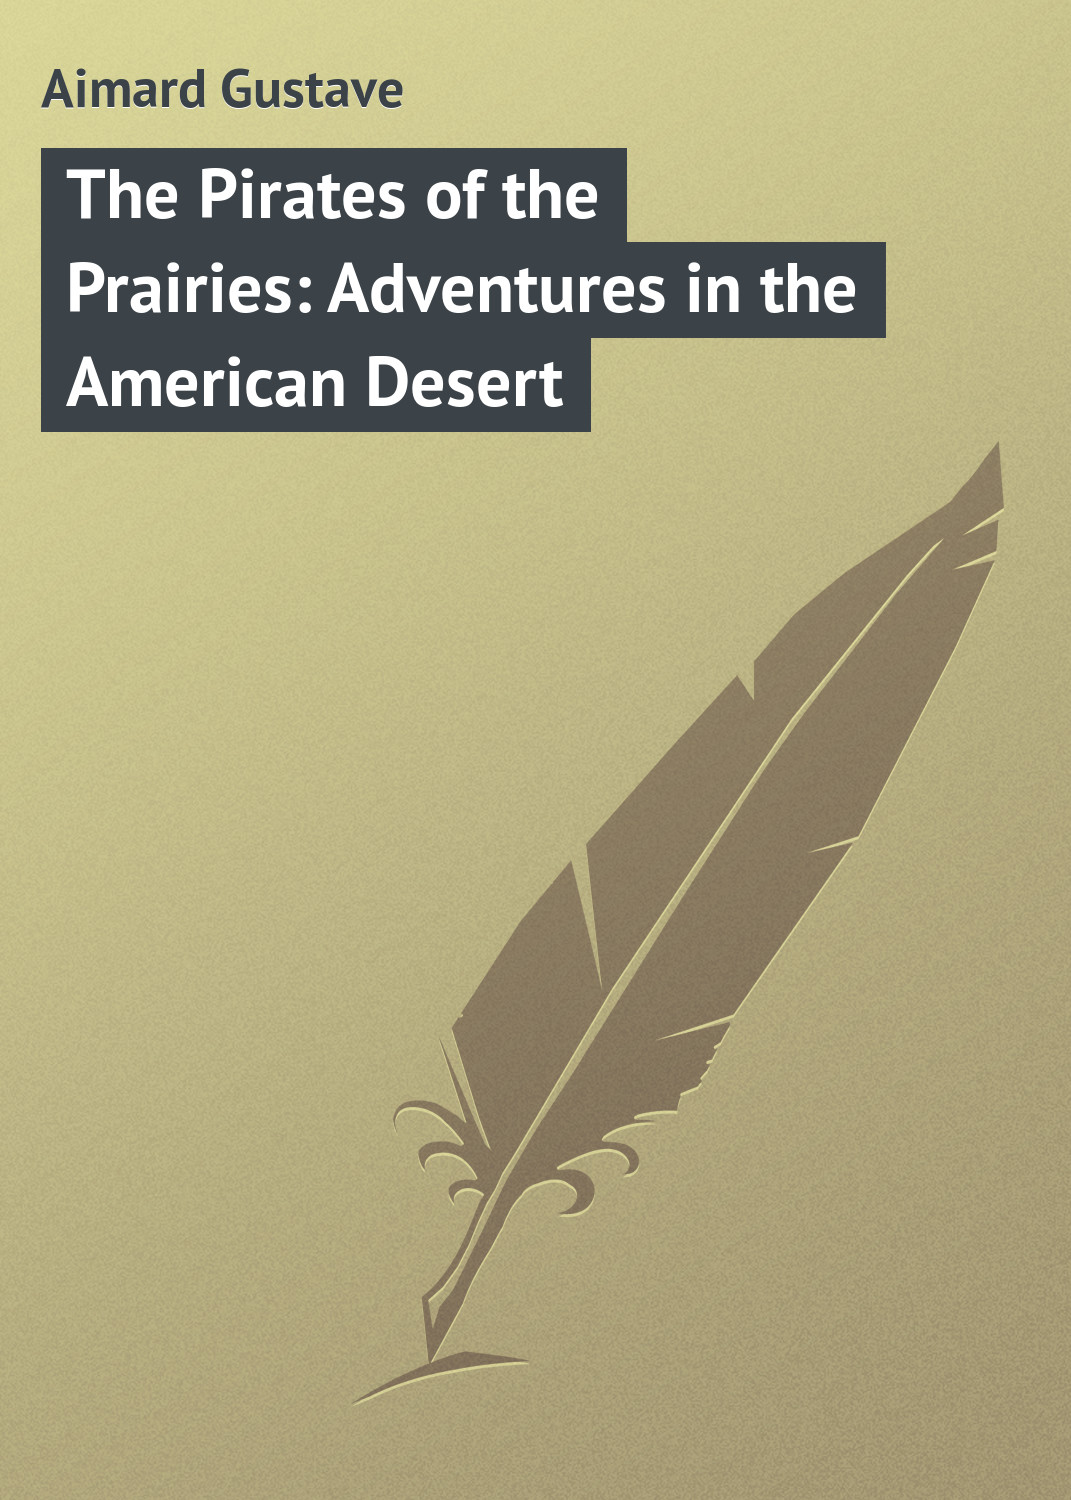 цена Gustave Aimard The Pirates of the Prairies: Adventures in the American Desert онлайн в 2017 году